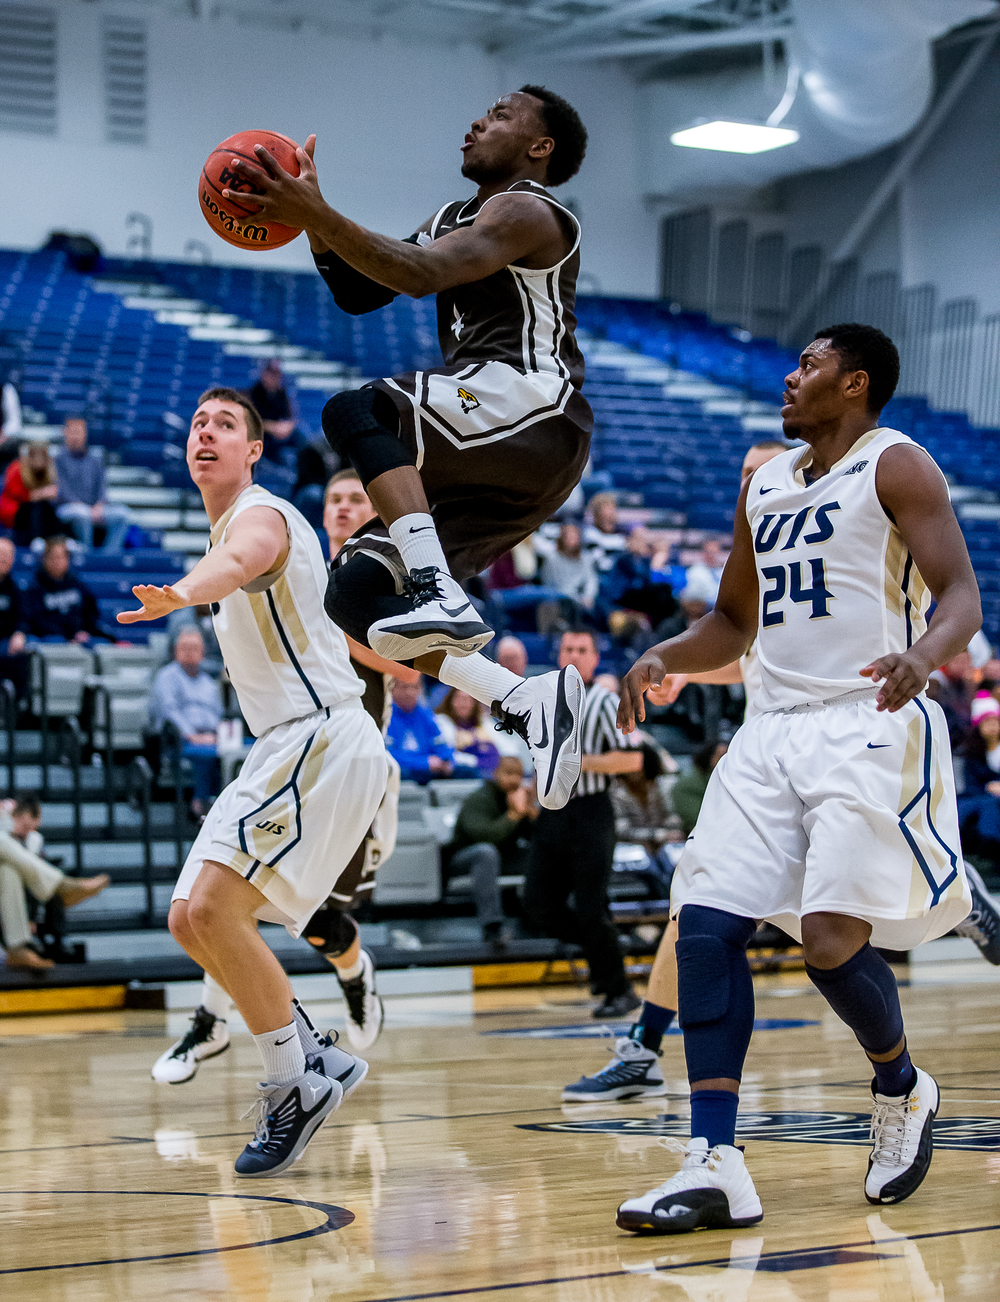 Quincy University's Thomas Jackson (4) goes up for a basket against University of Illinois Springfield's Wes Koral (3) and Jamall Millison (24) in the second half at the UIS Athletic & Recreation Center, Thursday, Jan. 8, 2015, in Springfield, Ill. Justin L. Fowler/The State Journal-Register